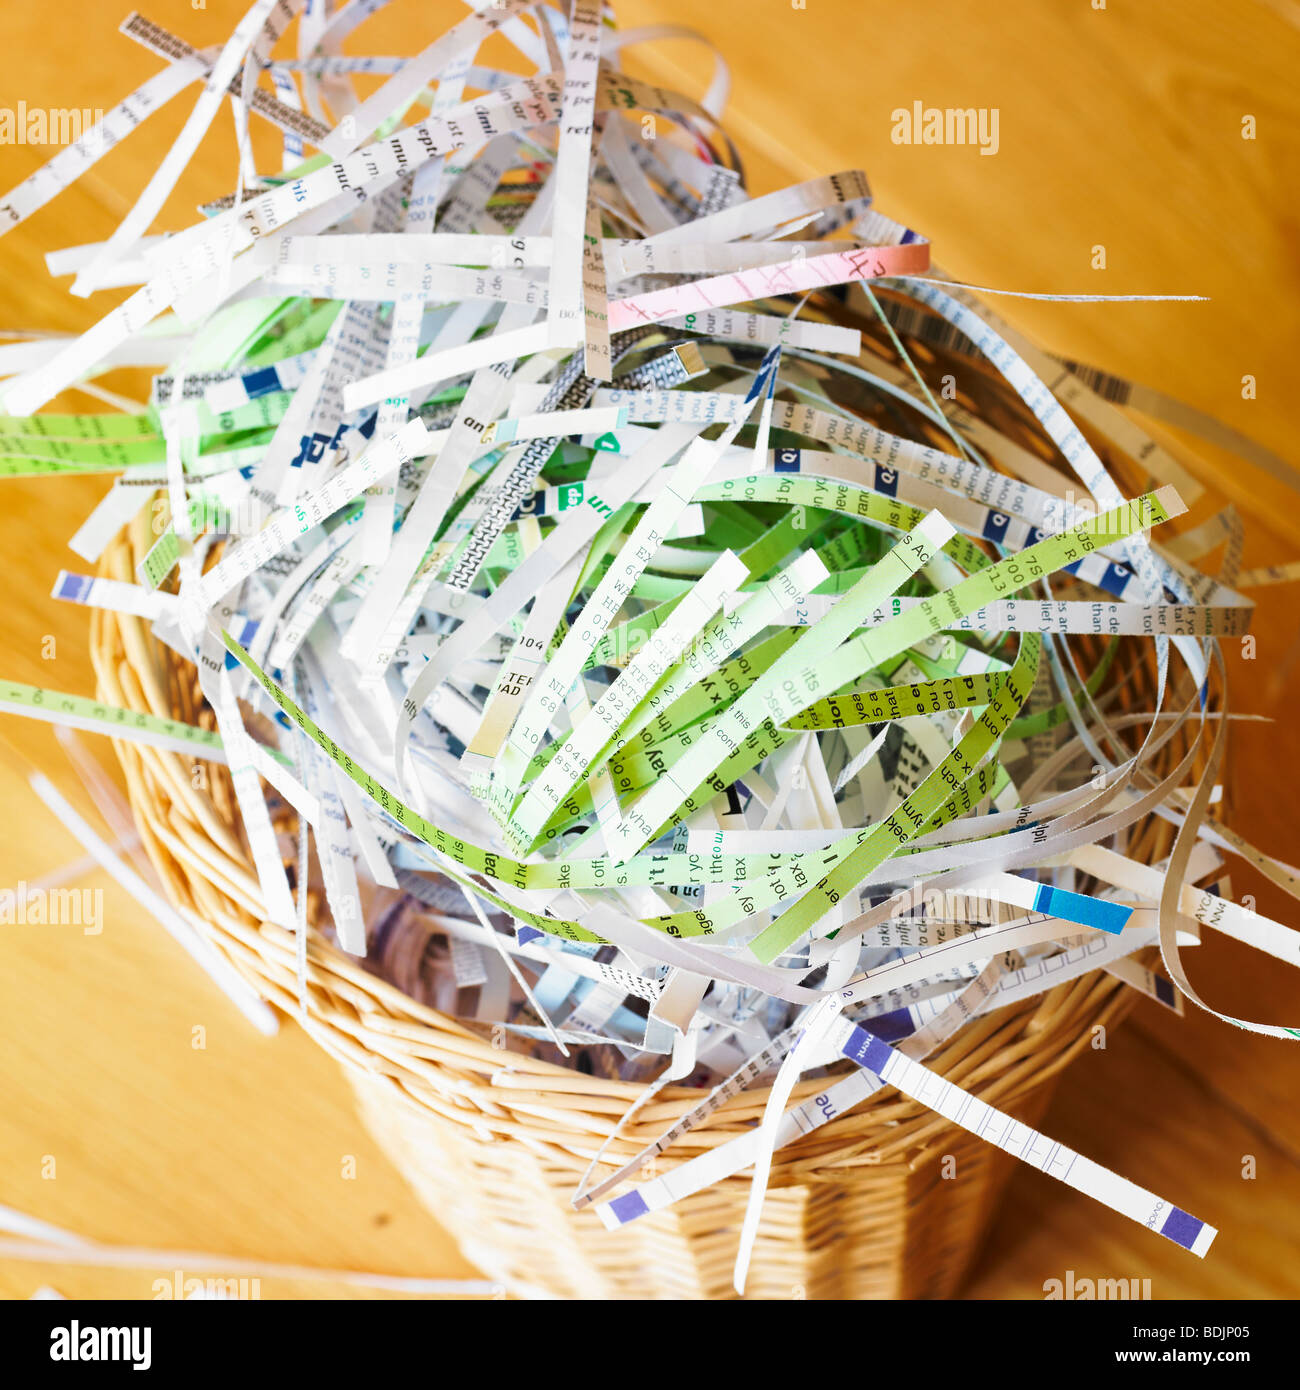 Shredded paper and letters in waste bin - identity theft protection. - Stock Image